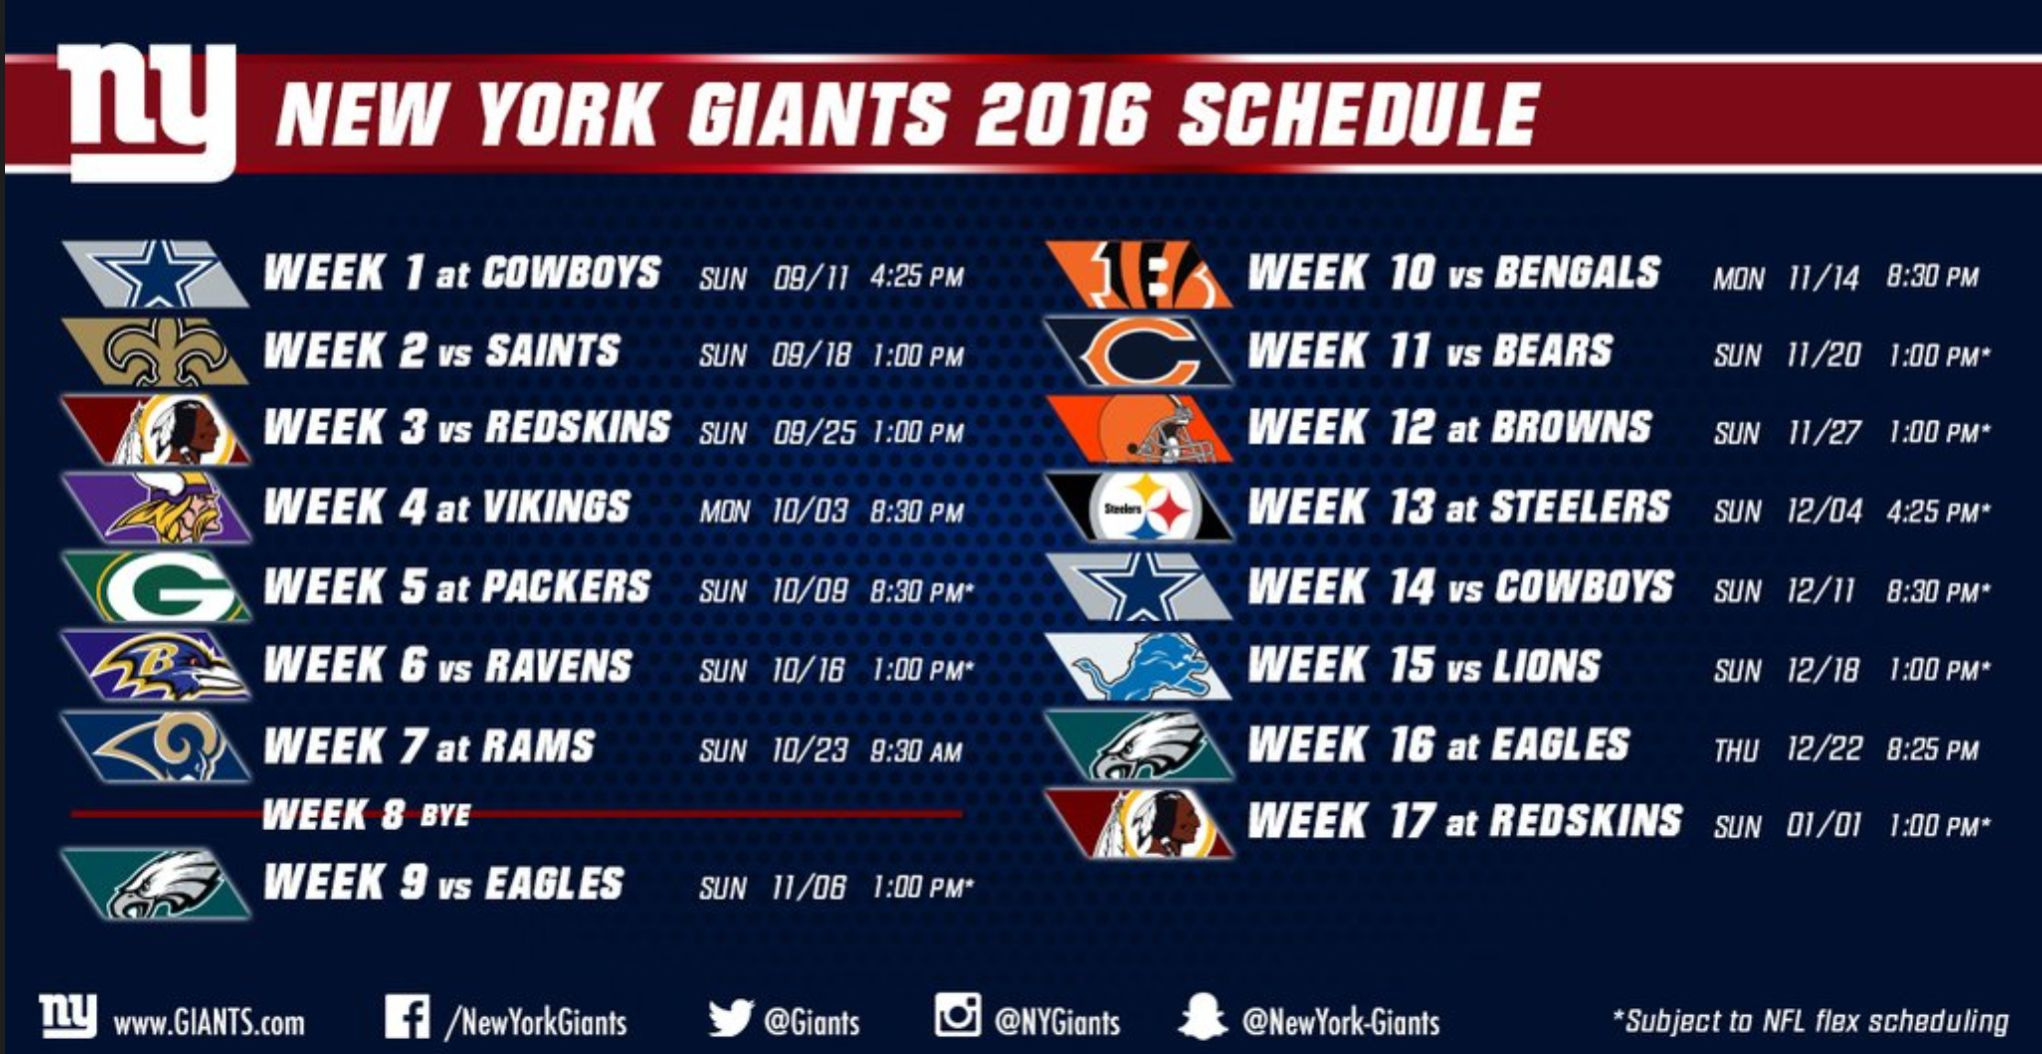 Graziano released his game-by-game projections for the New York Giants ...